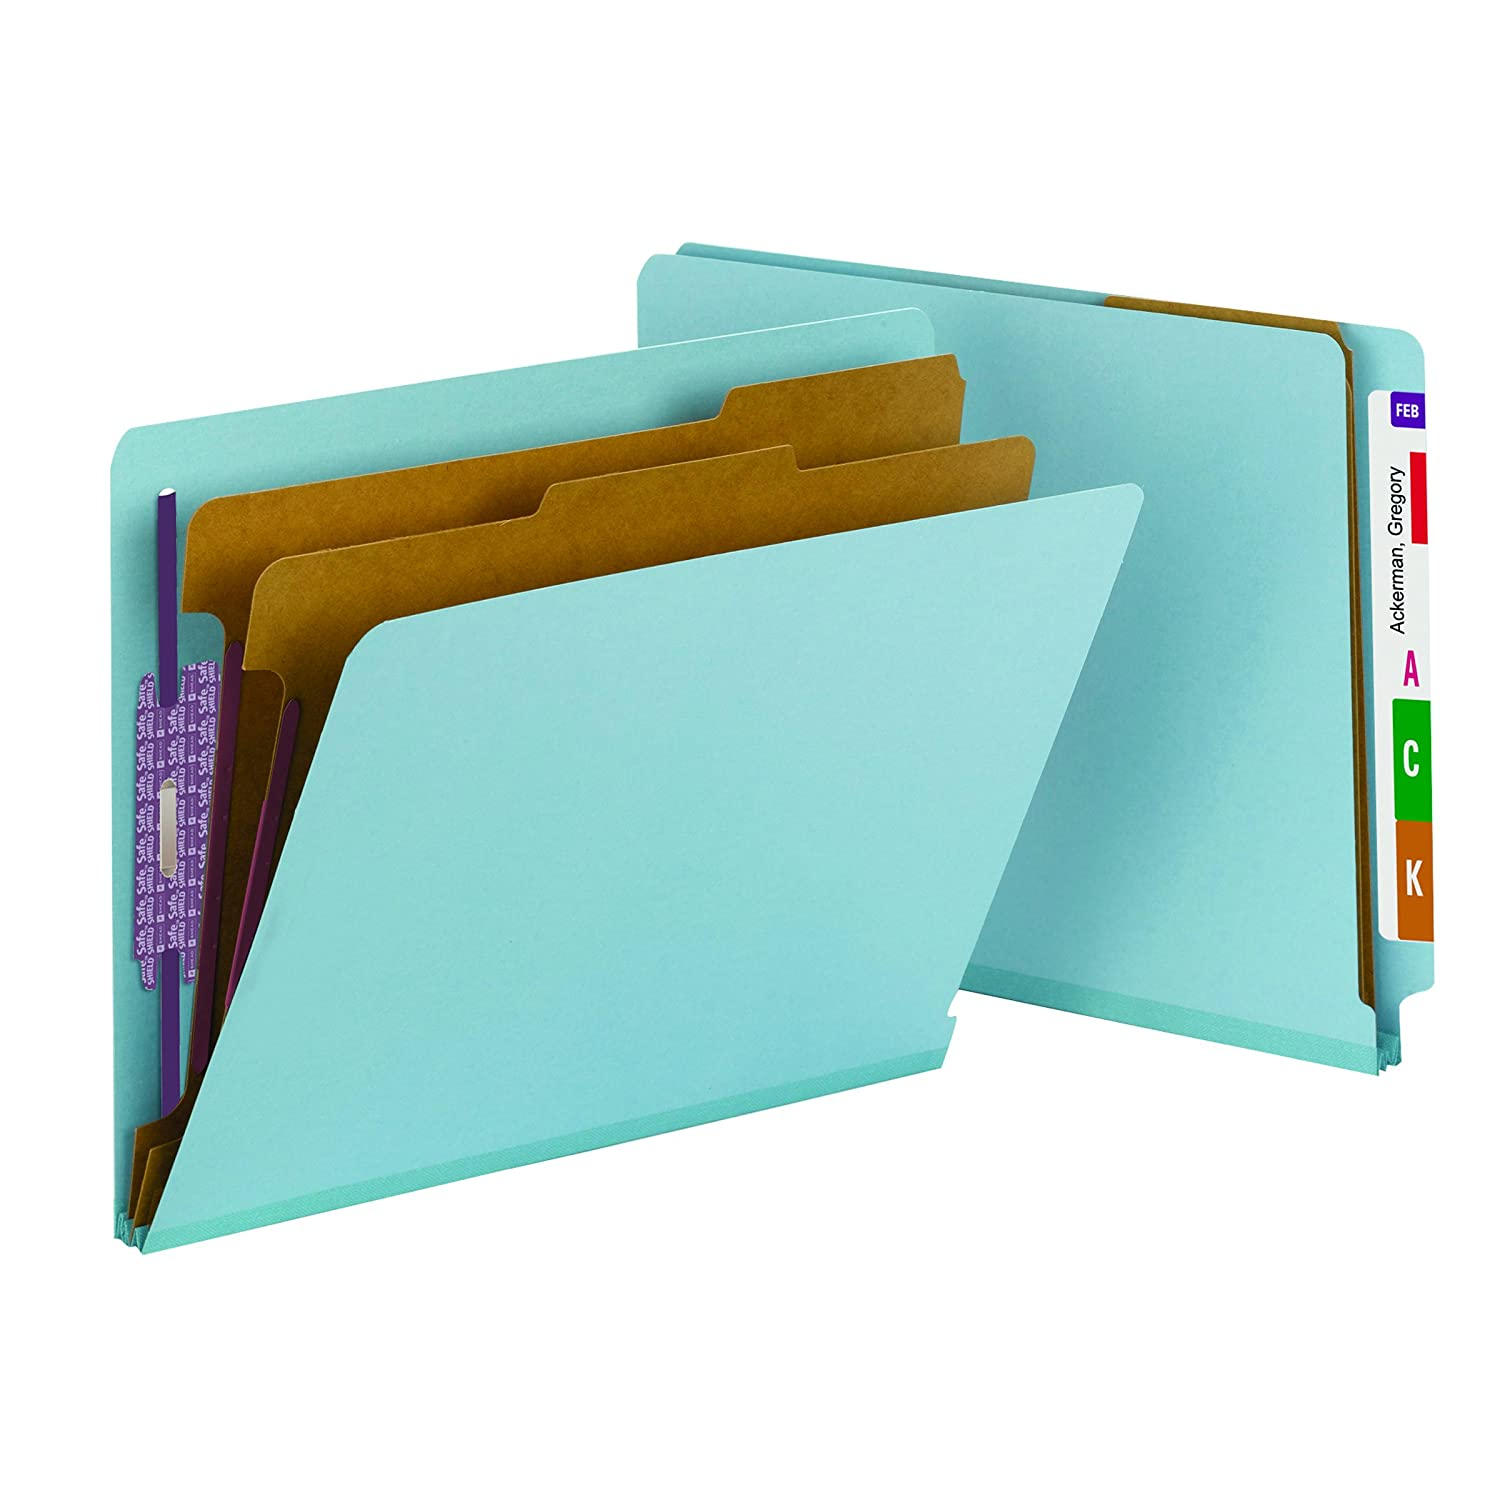 Smead End Tab Classification Folder, Letter, Straight, 2 Dividers, Green, 10 per Box (26785)